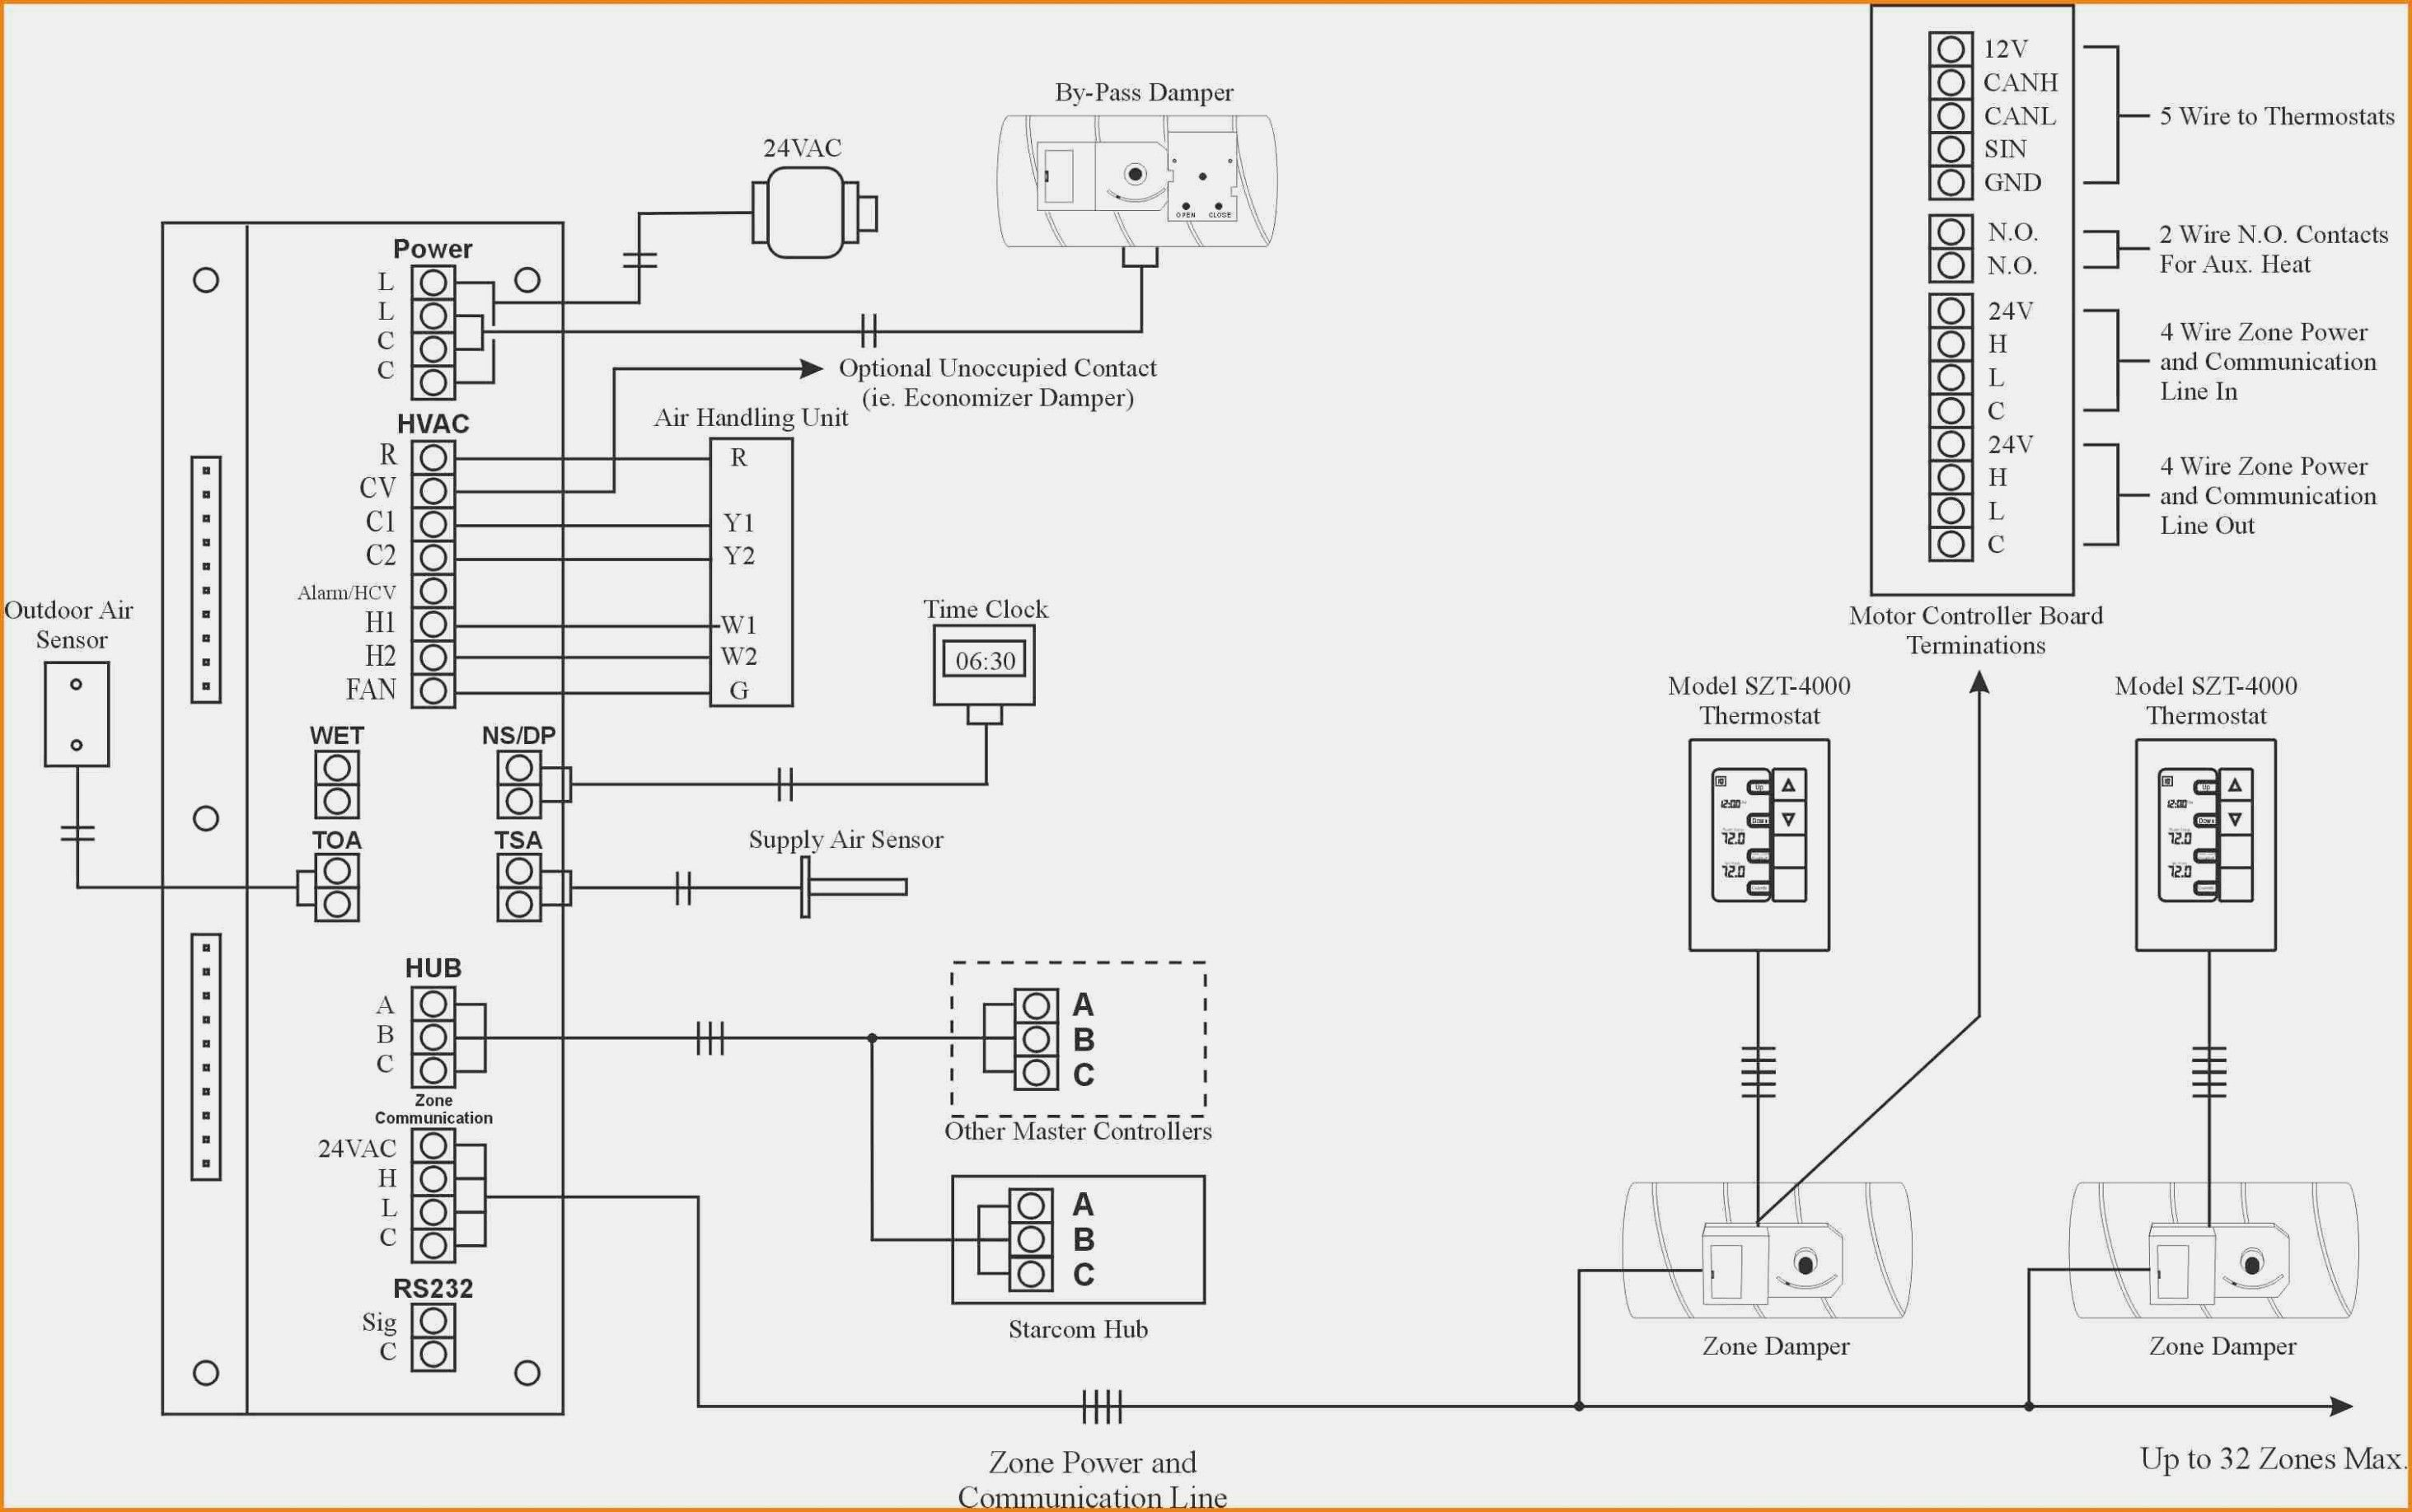 Wiring Diagram Spy Car Alarm Diagram Diagramtemplate Diagramsample